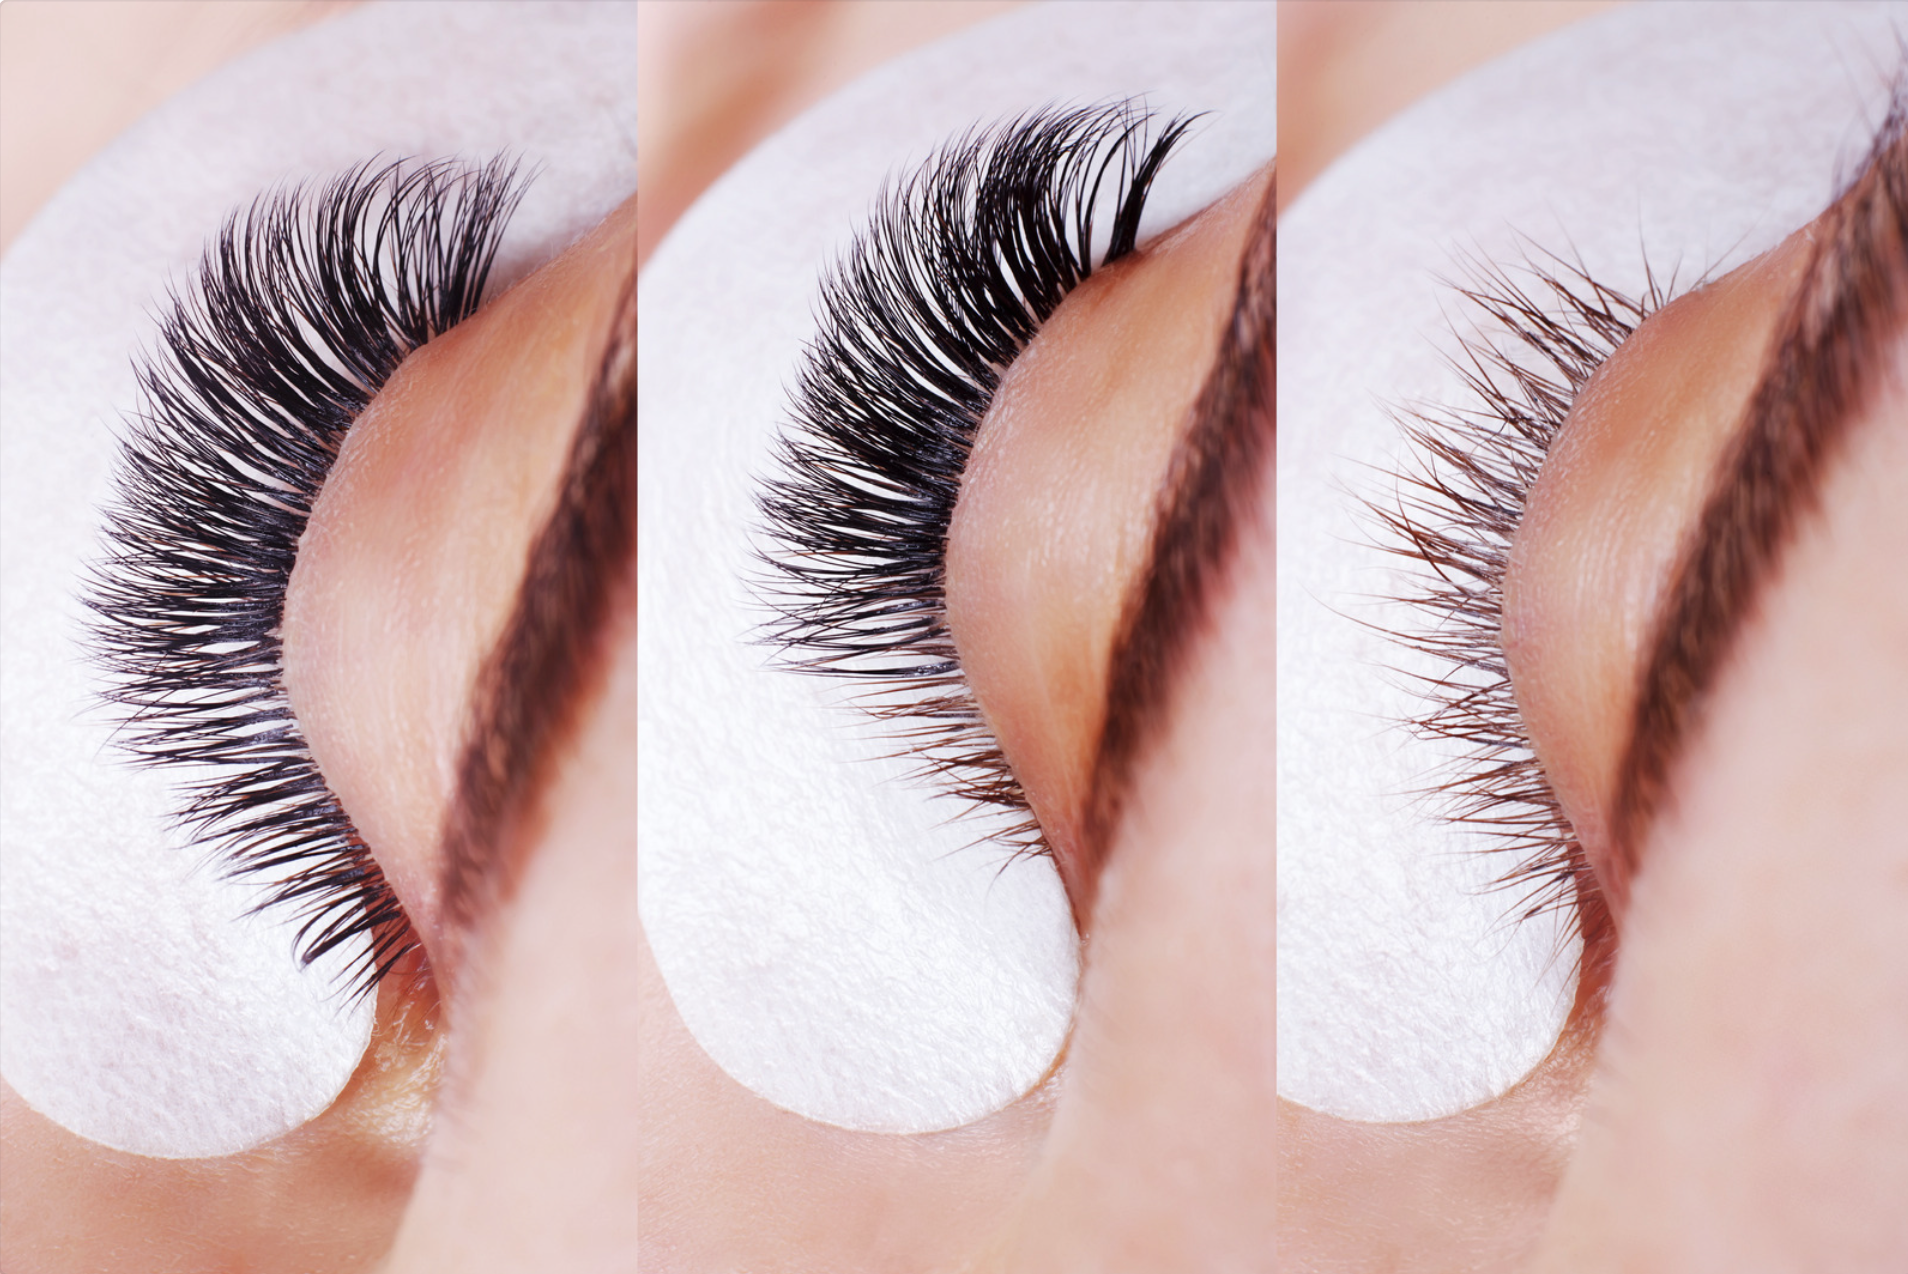 before during, and after lash installation